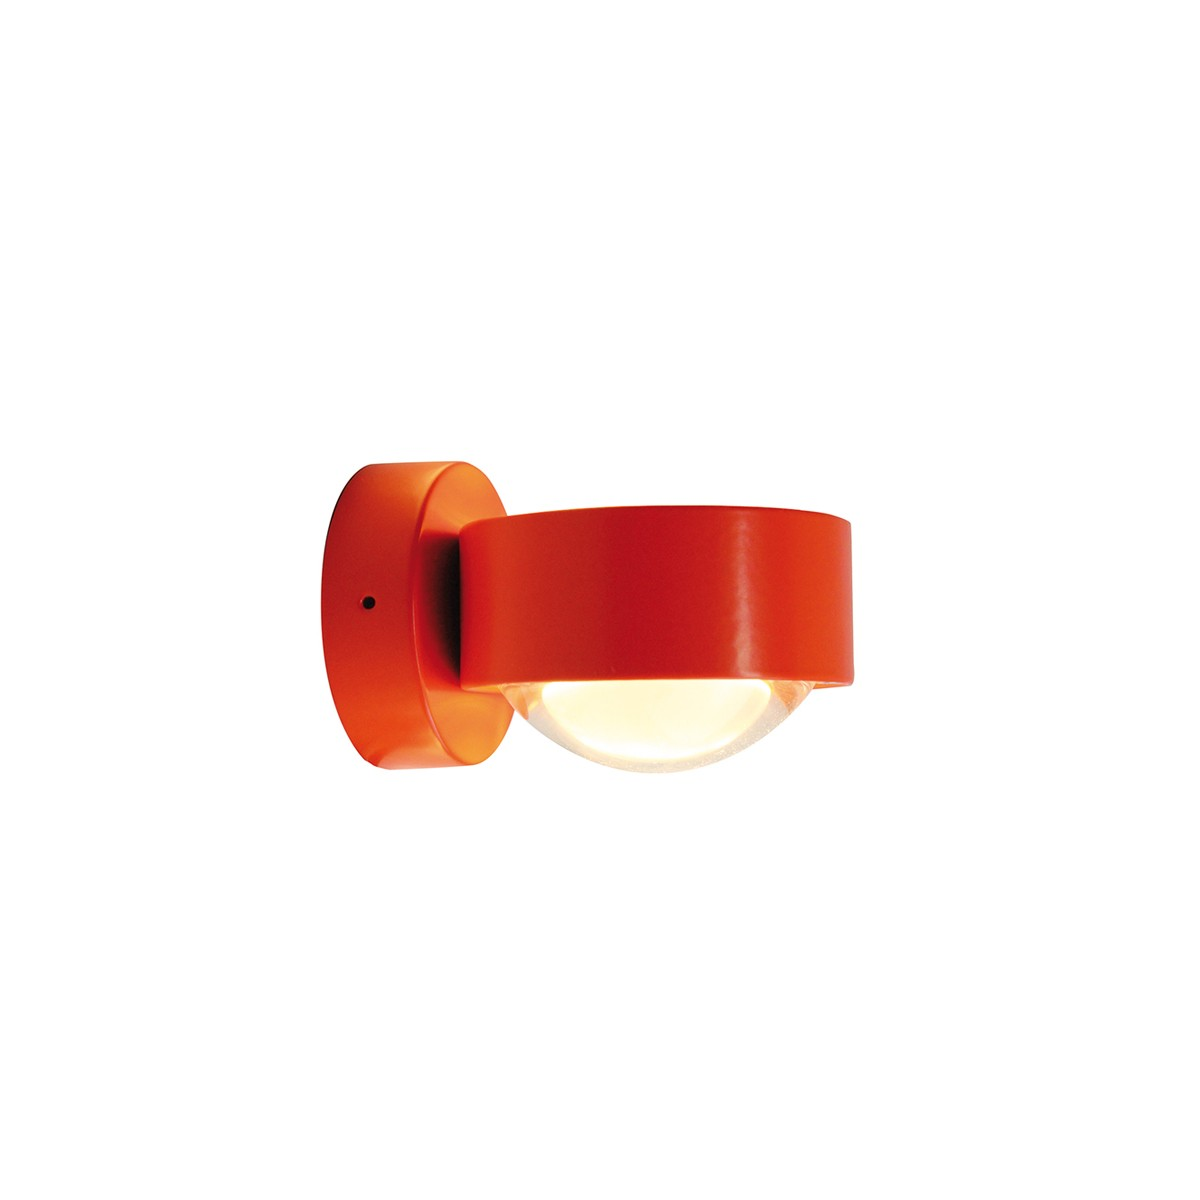 Top Light Puk Wall LED Wandleuchte, orange